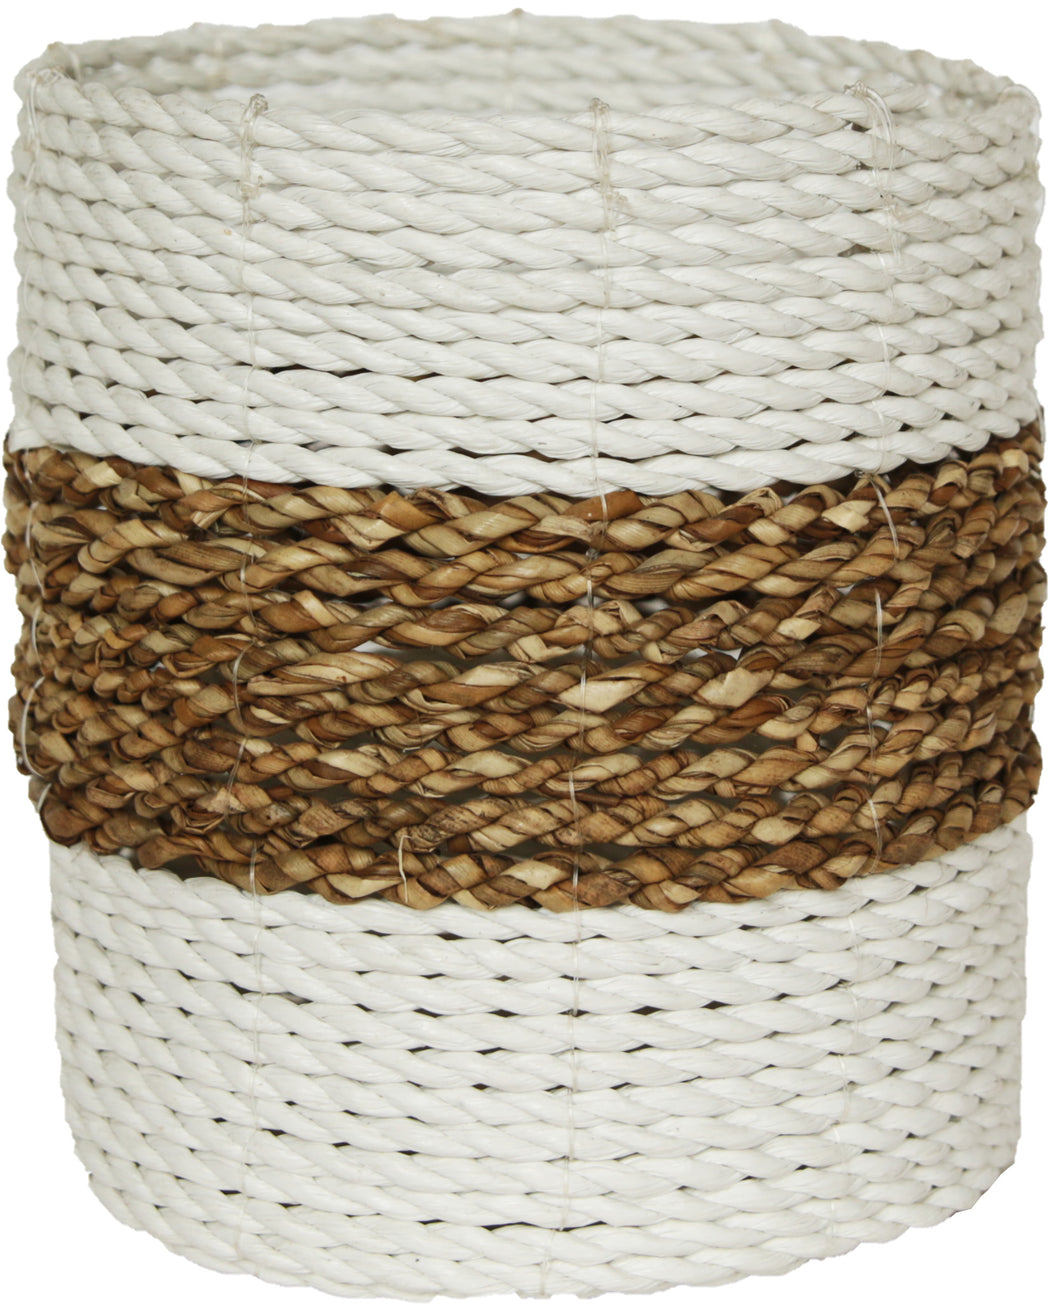 WOVEN RATTAN NATURAL AND WHITE BASKET LARGE